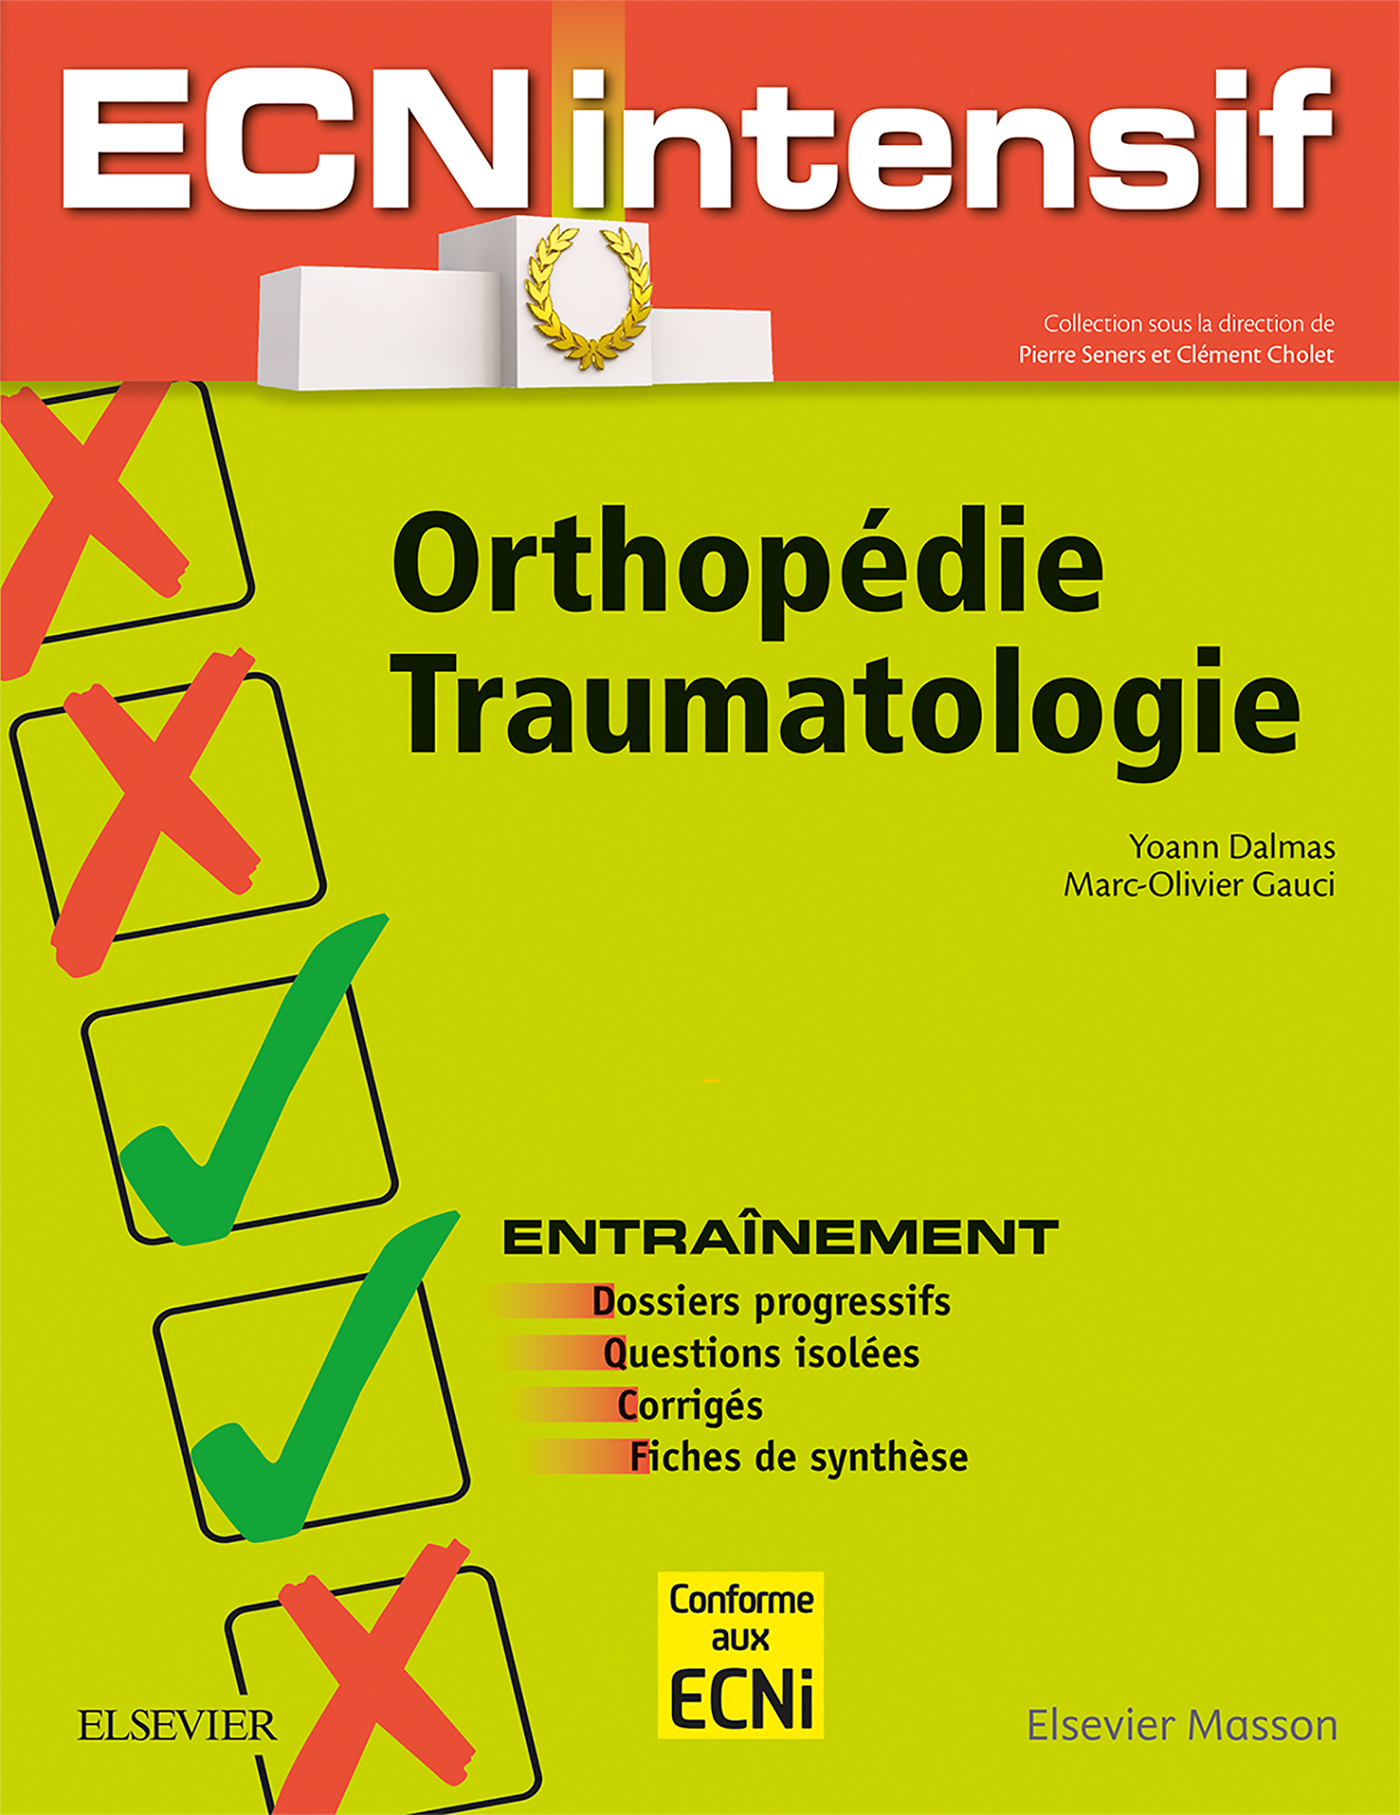 ORTHOPEDIE-TRAUMATOLOGIE - DOSSIERS PROGRESSIFS ET QUESTIONS ISOLEES CORRIGES